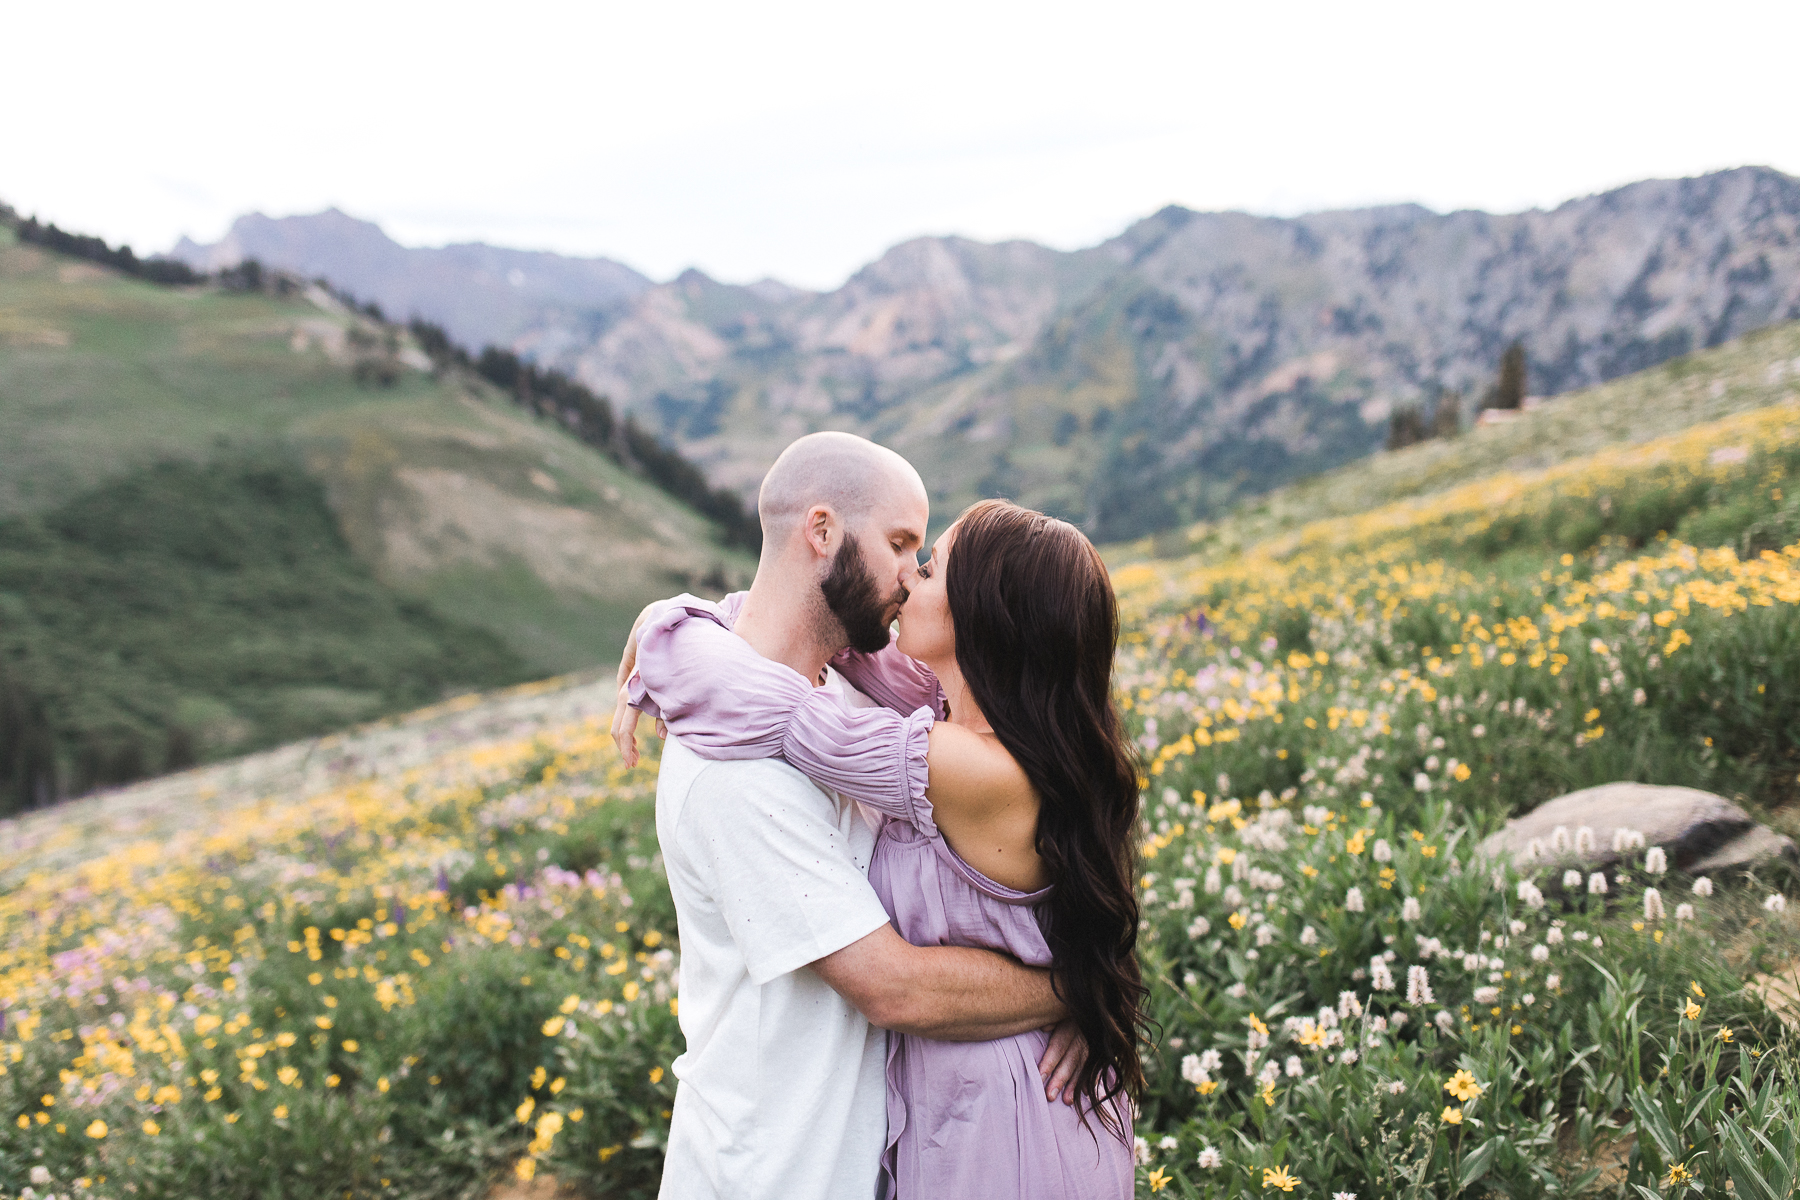 Wyoming mountaintop Elopement Photography by Megan Lee Photography.